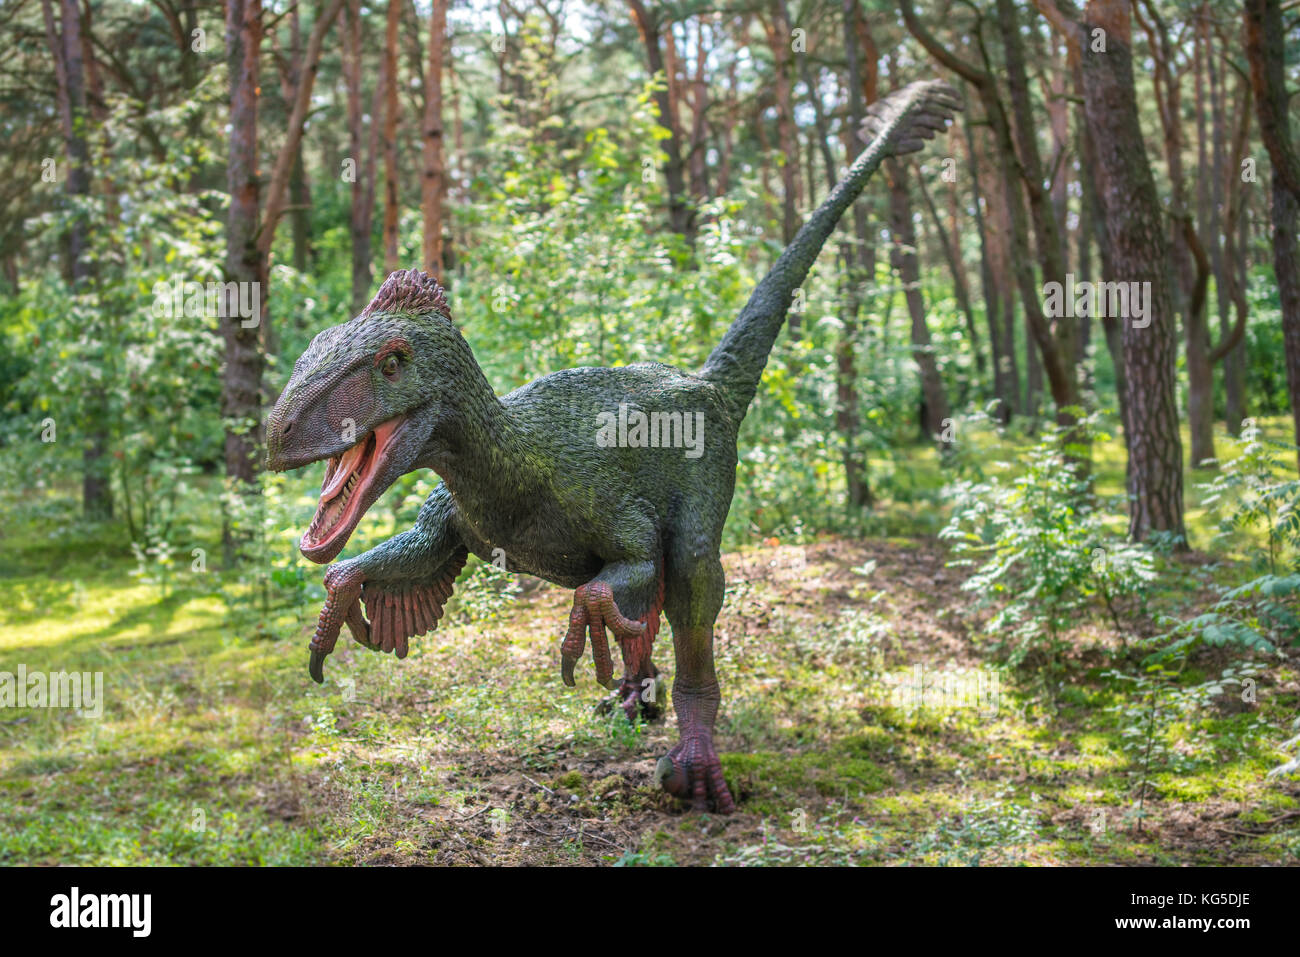 Raptor dinosaur stock photos raptor dinosaur stock images alamy - Raptor dinosaure ...